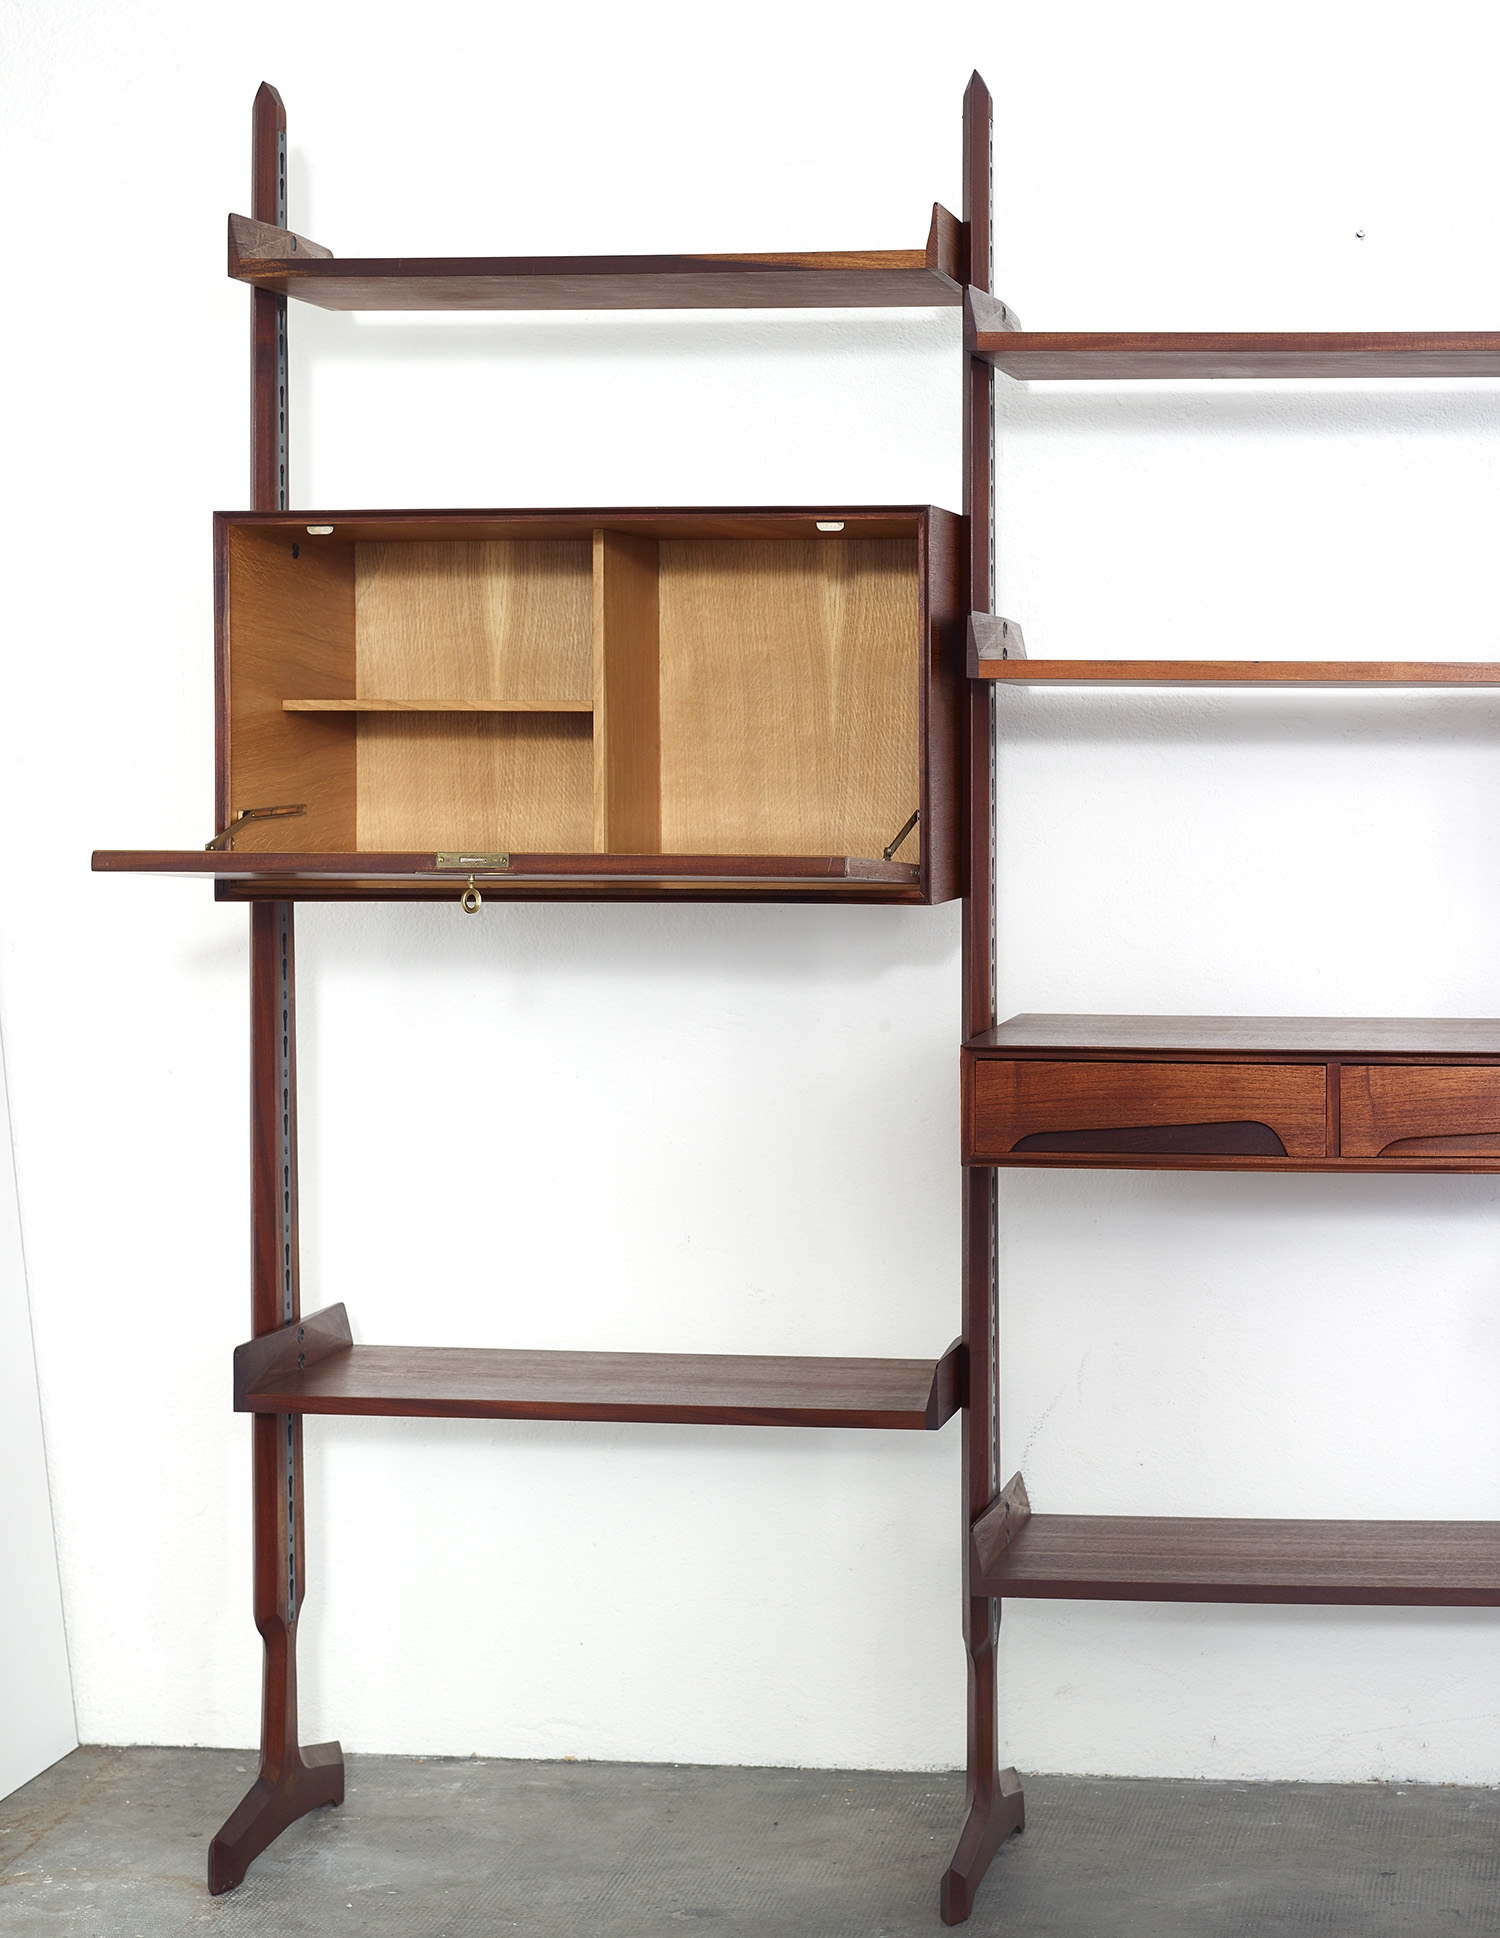 modular-teak-library-by-edmondo-palutari-for-dassi-italy-1959-image-04